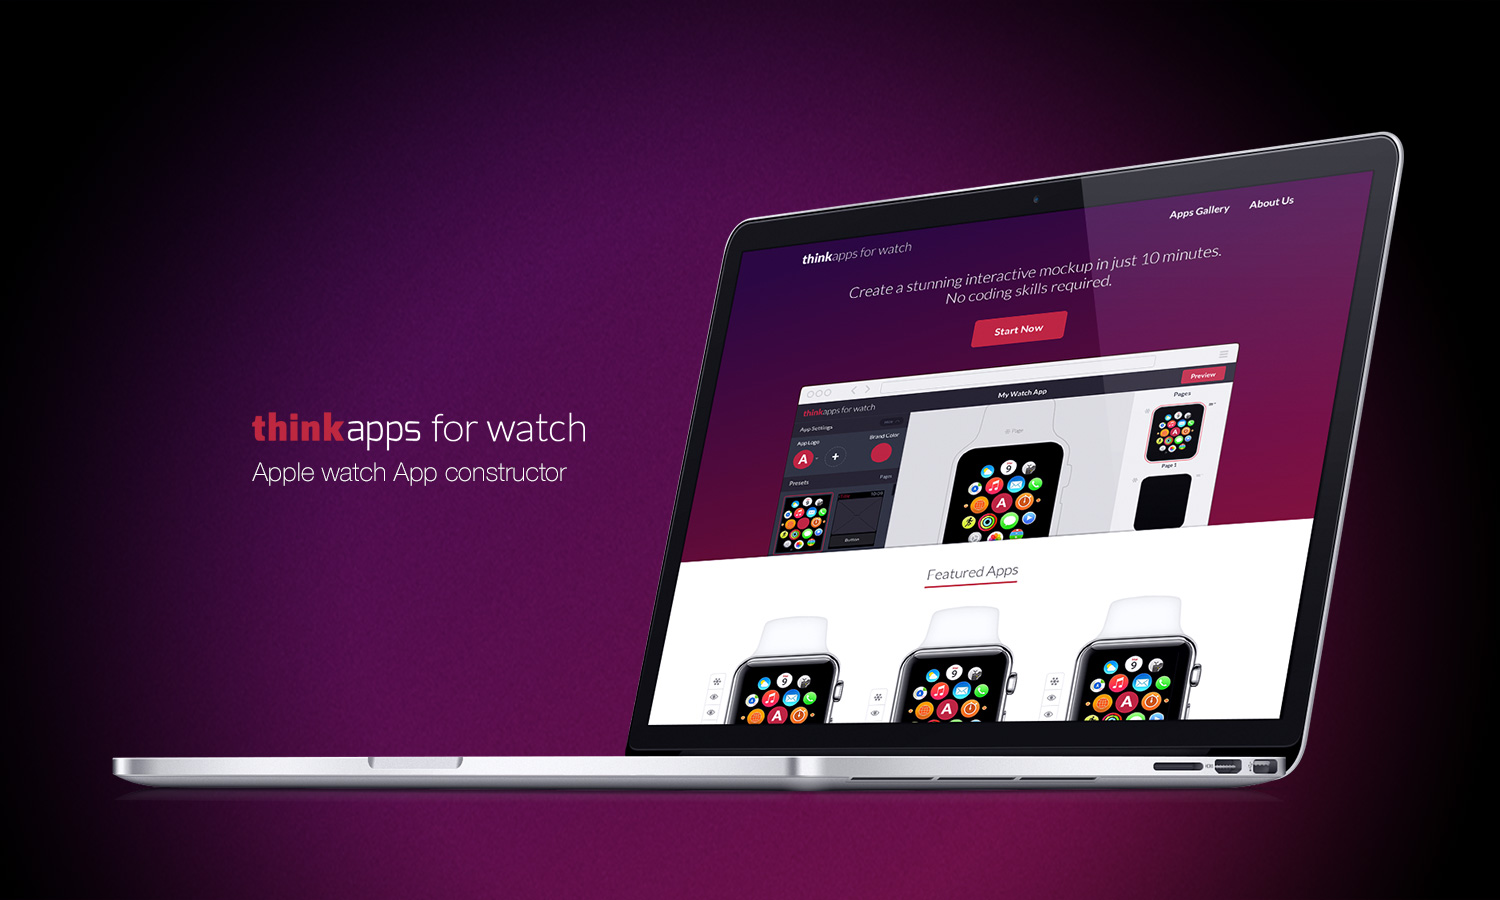 Thinkapps for Watch